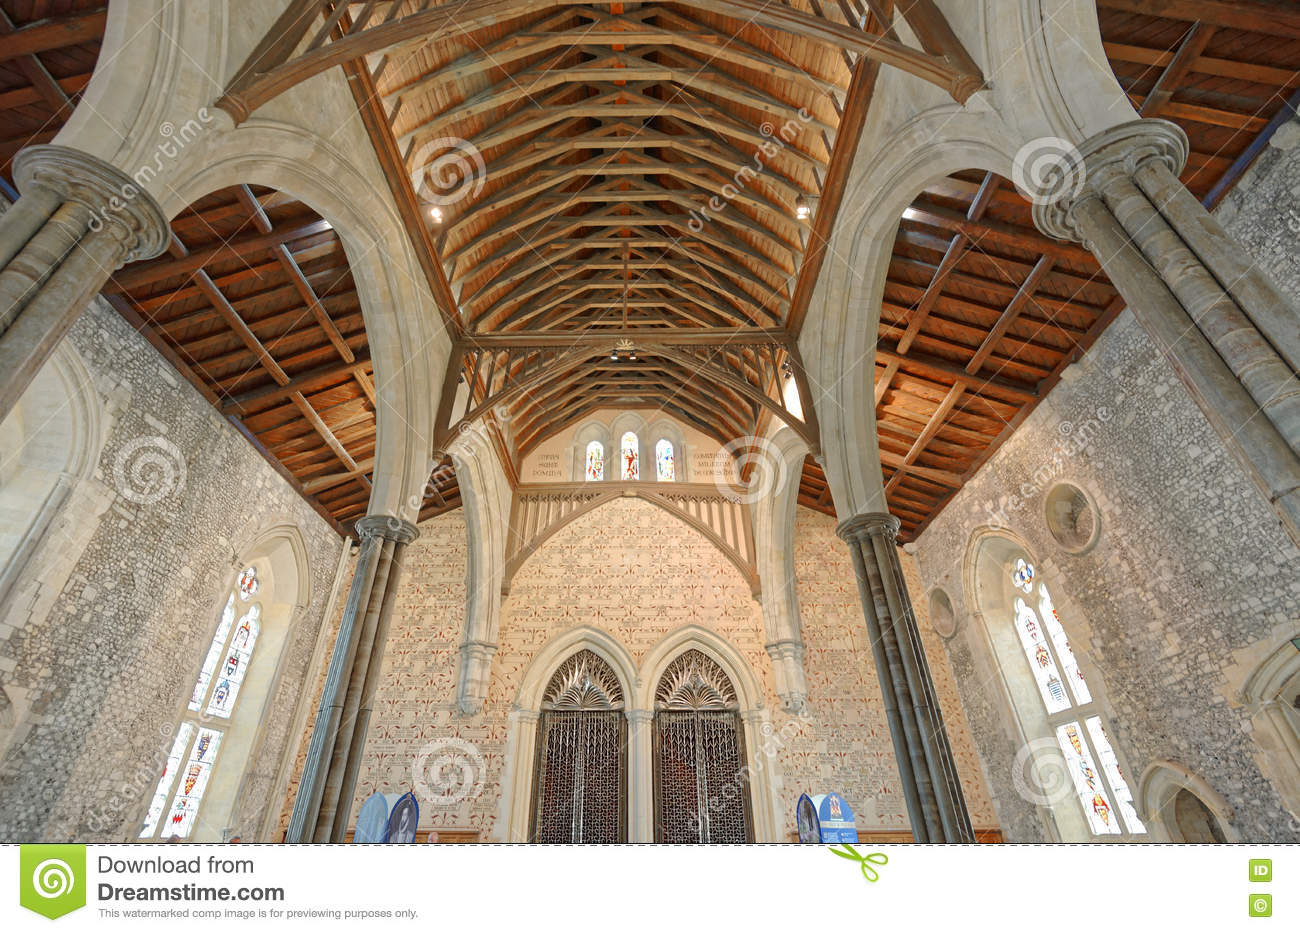 The Great Hall of Winchester Castle in Hampshire, England